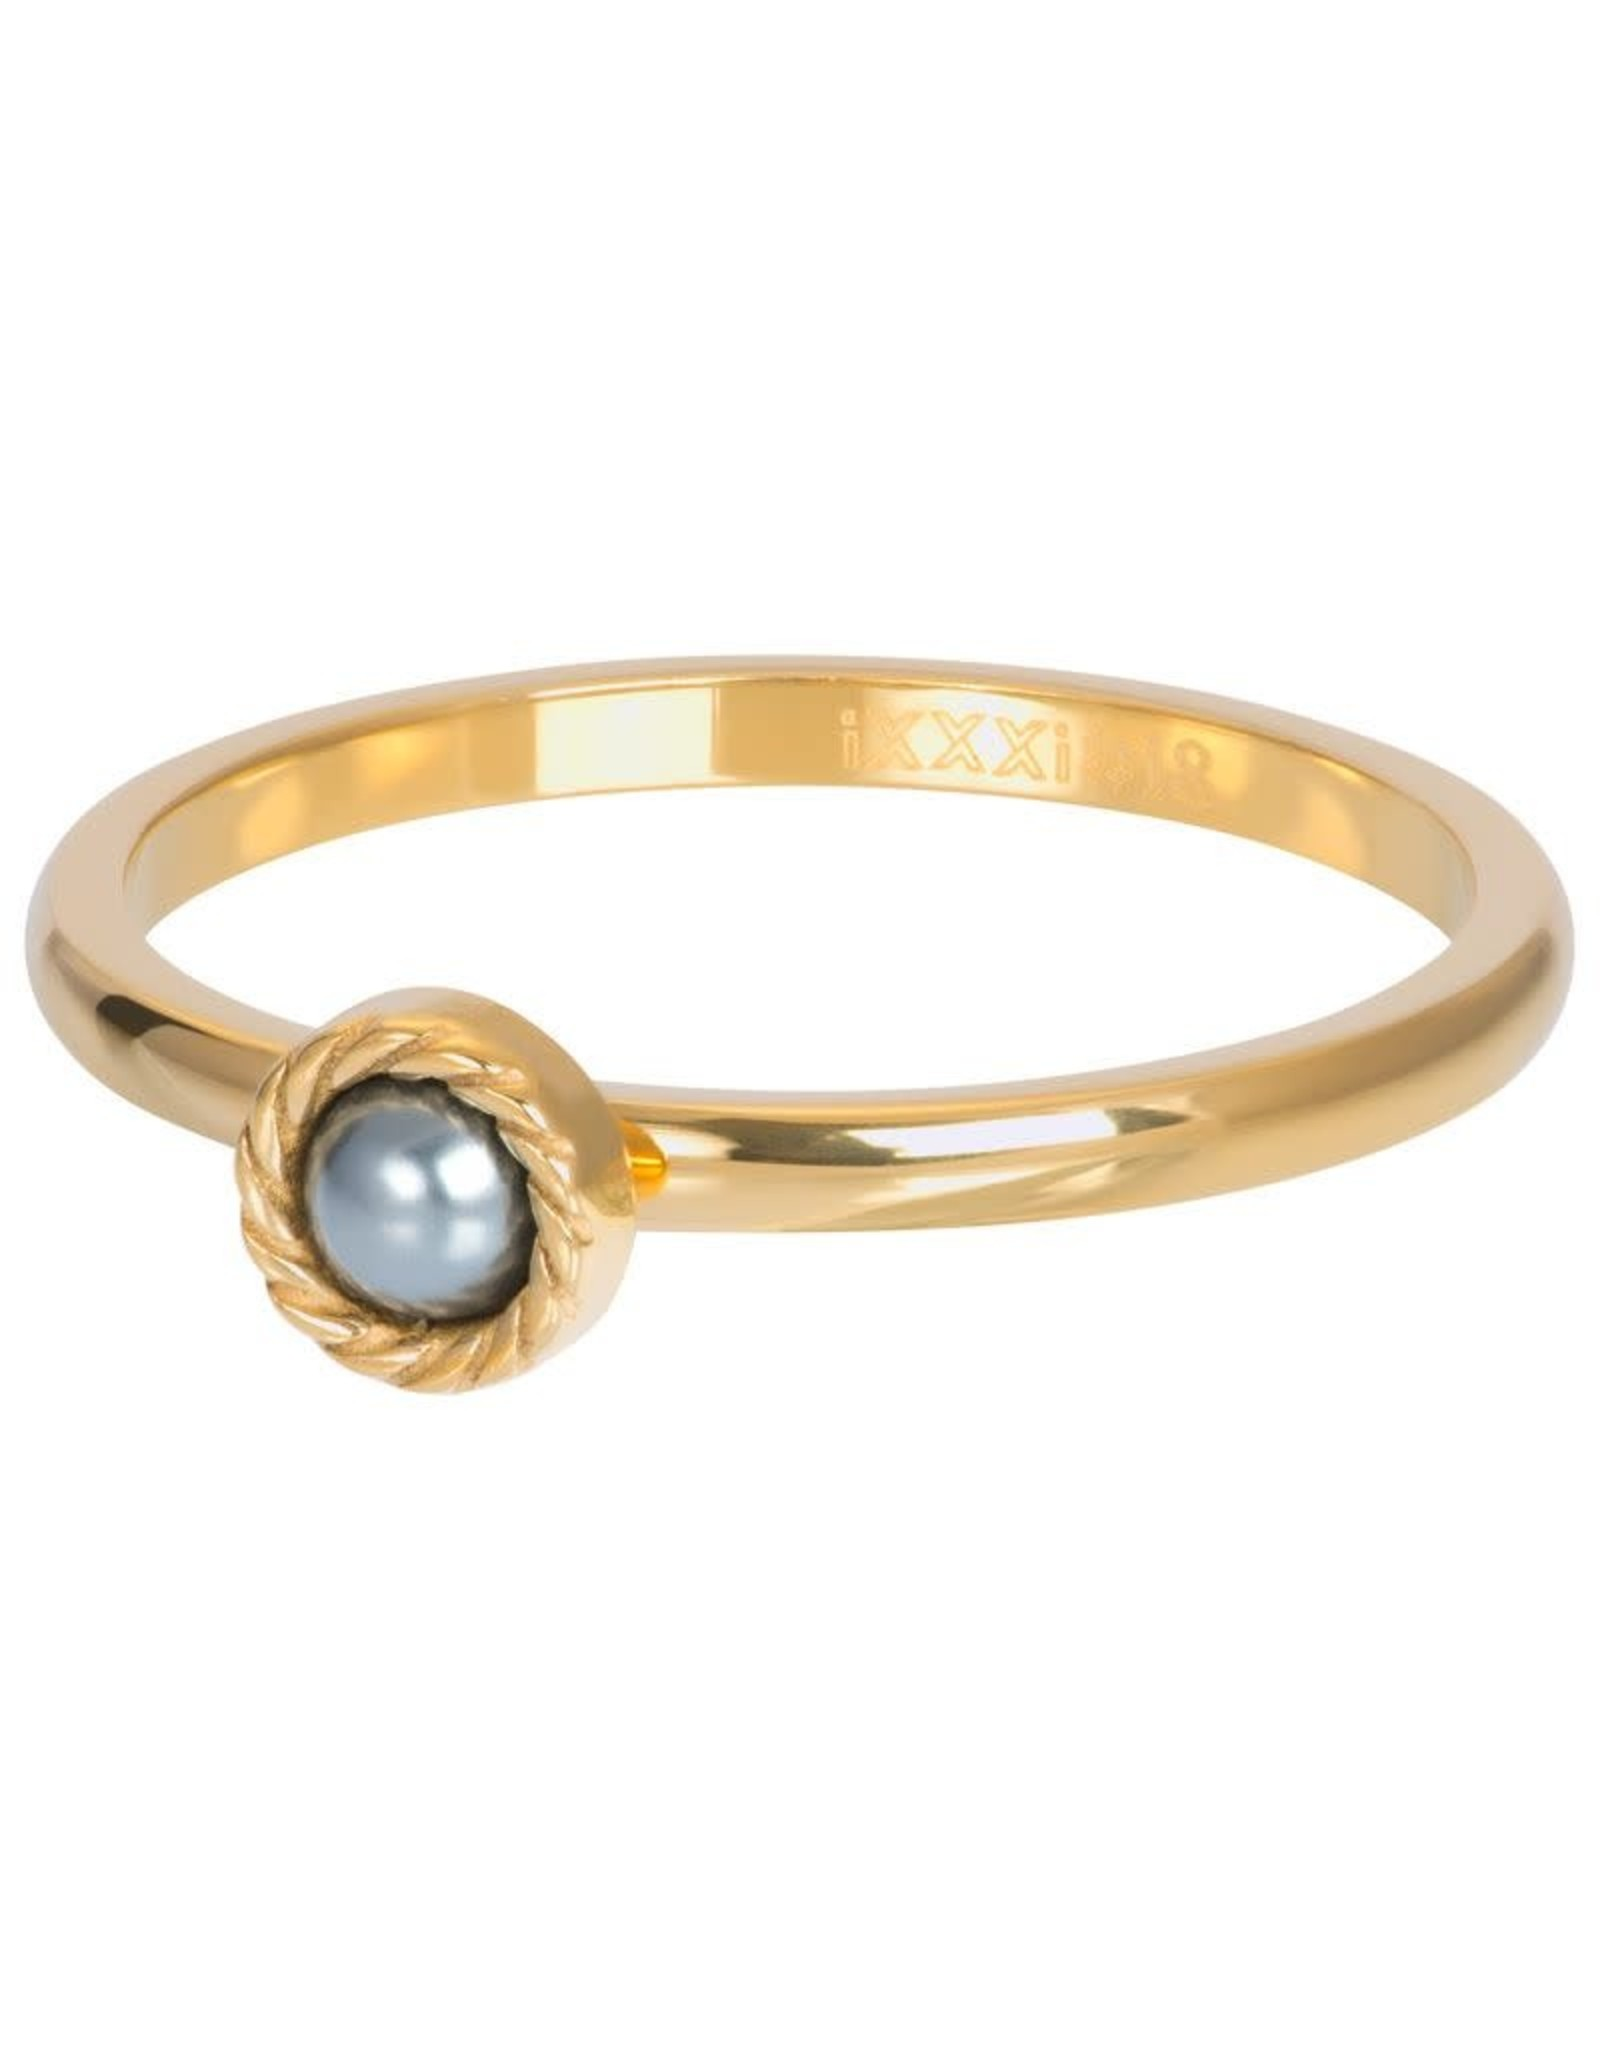 IXXXI IXXXI Royal Grey ring Gold